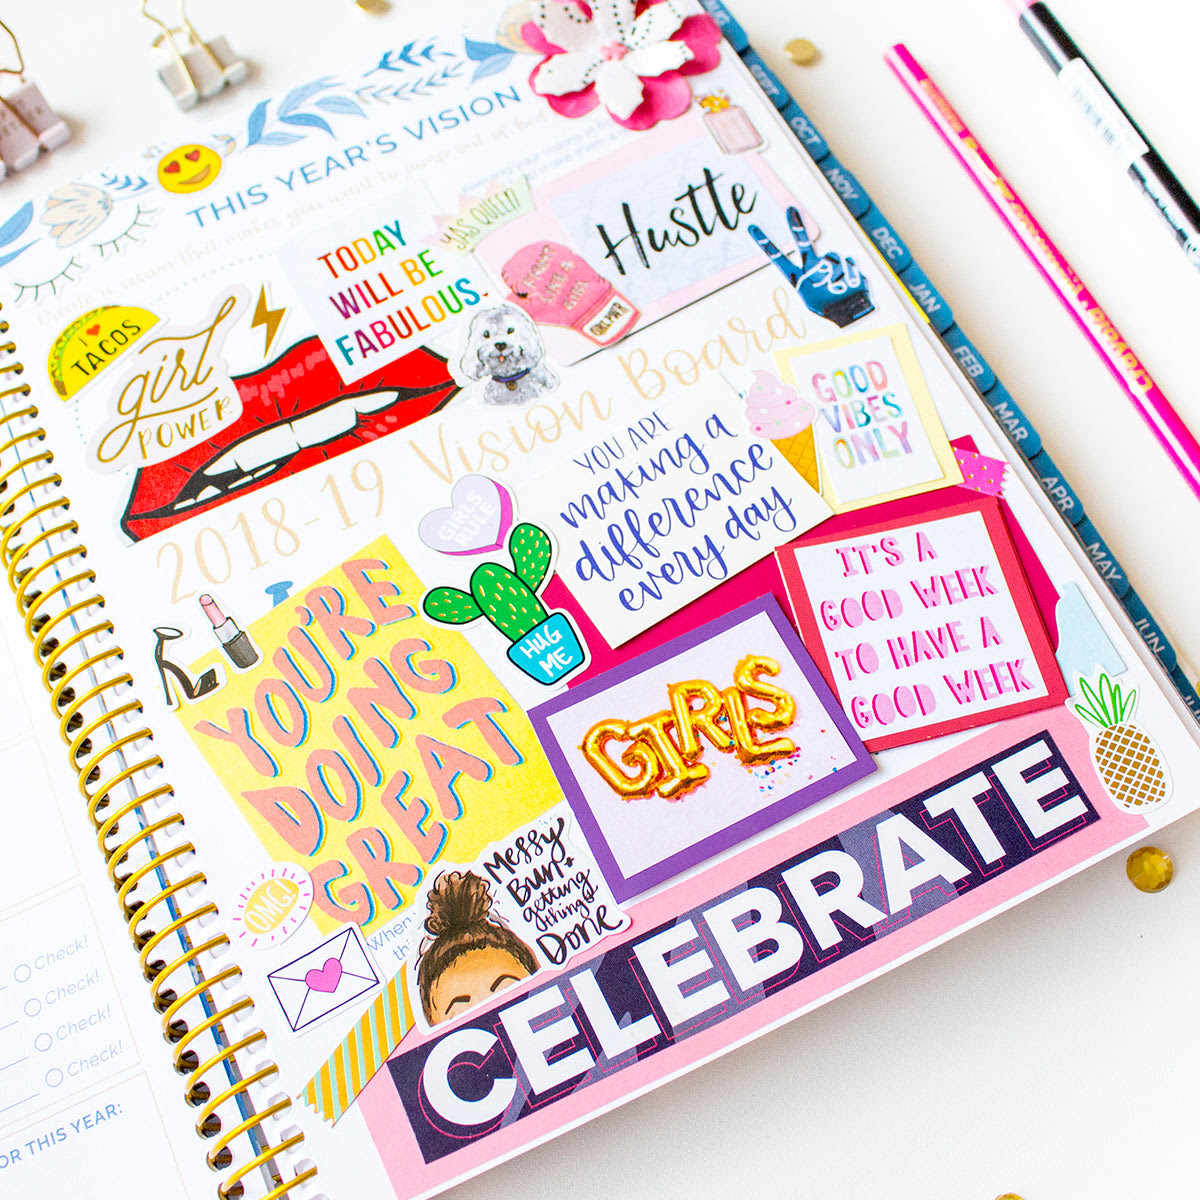 How to Create a Vision Board  bloom daily planners